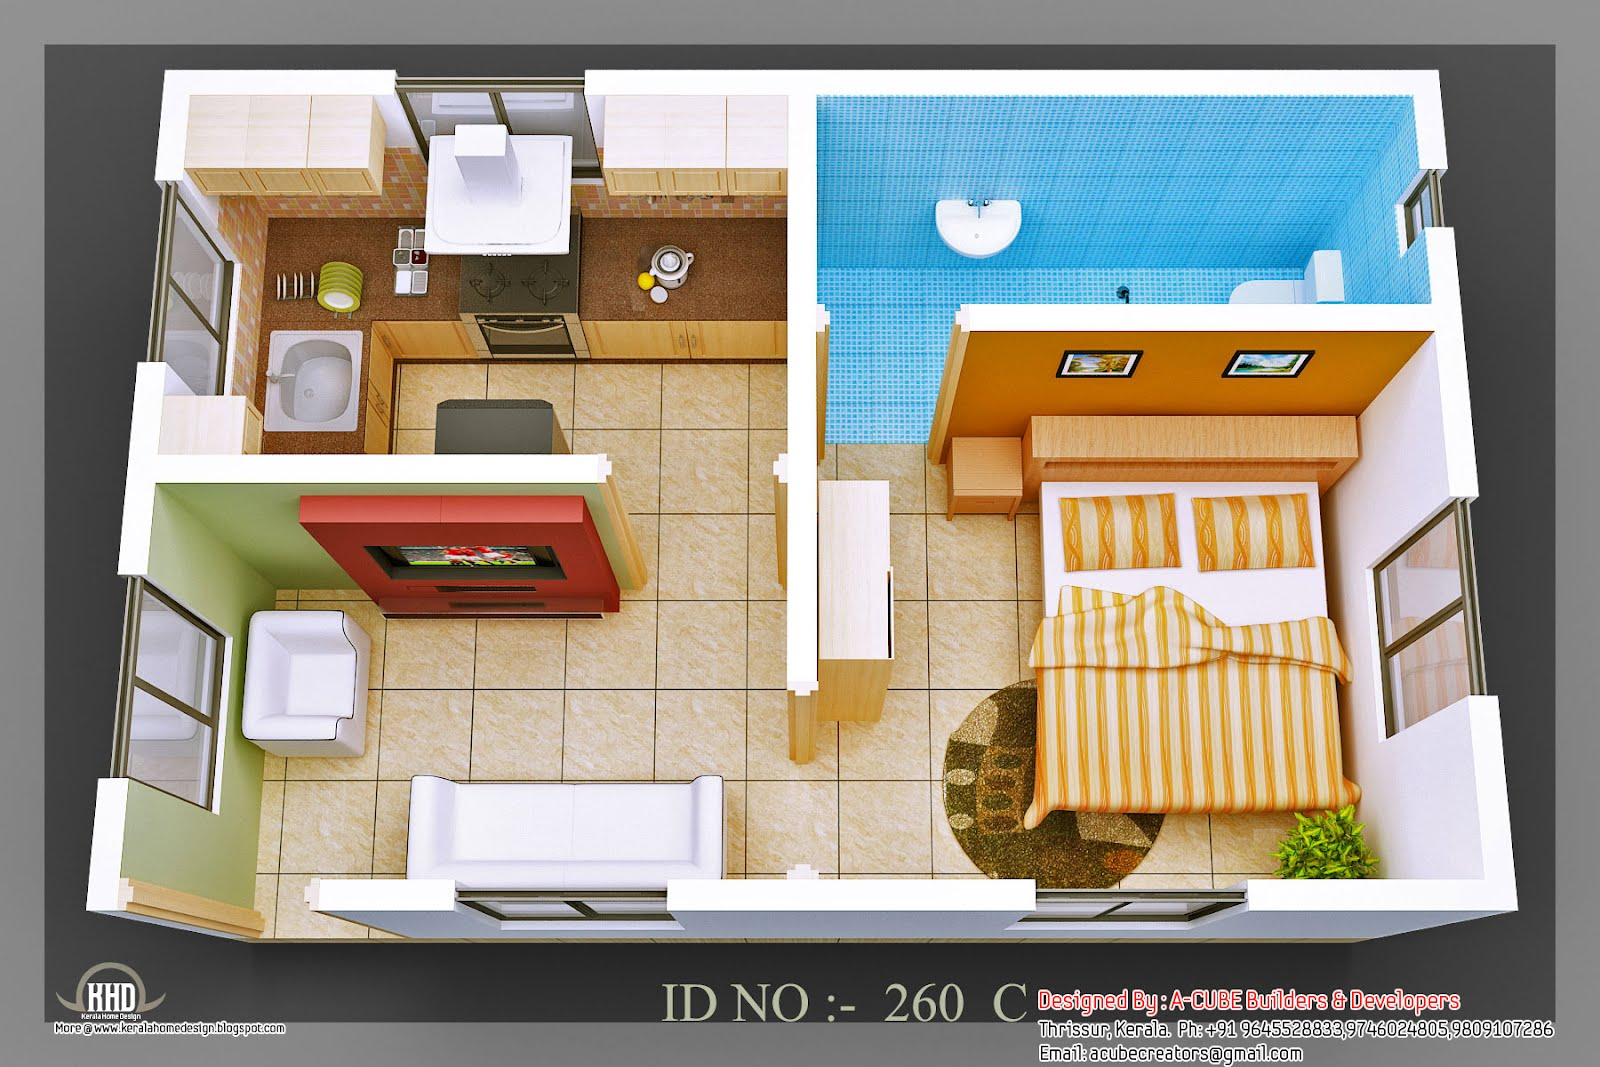 3d Isometric Views Of Small House Plans Indian Home Decor: home designer 3d